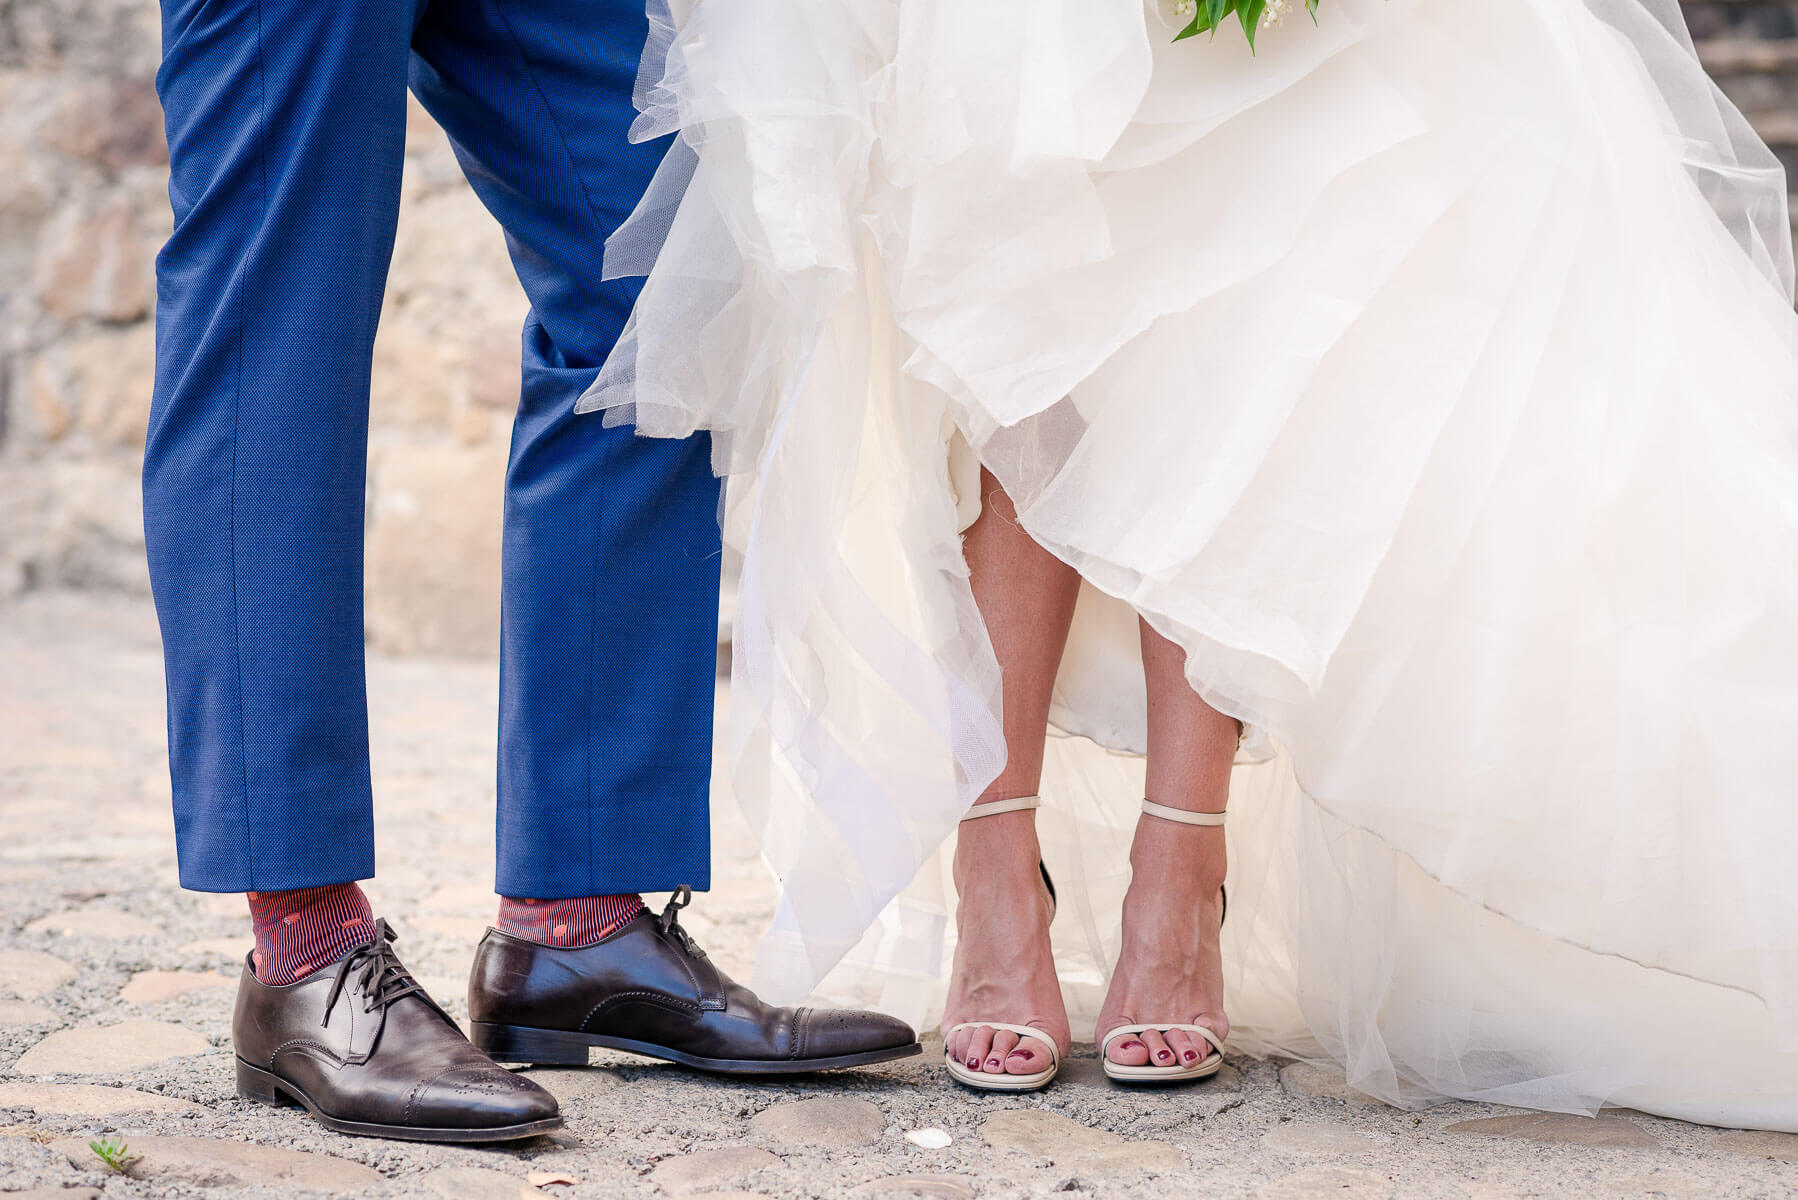 Boda Nuria & David zapatos novios | Manel Tamayo wedding photographer